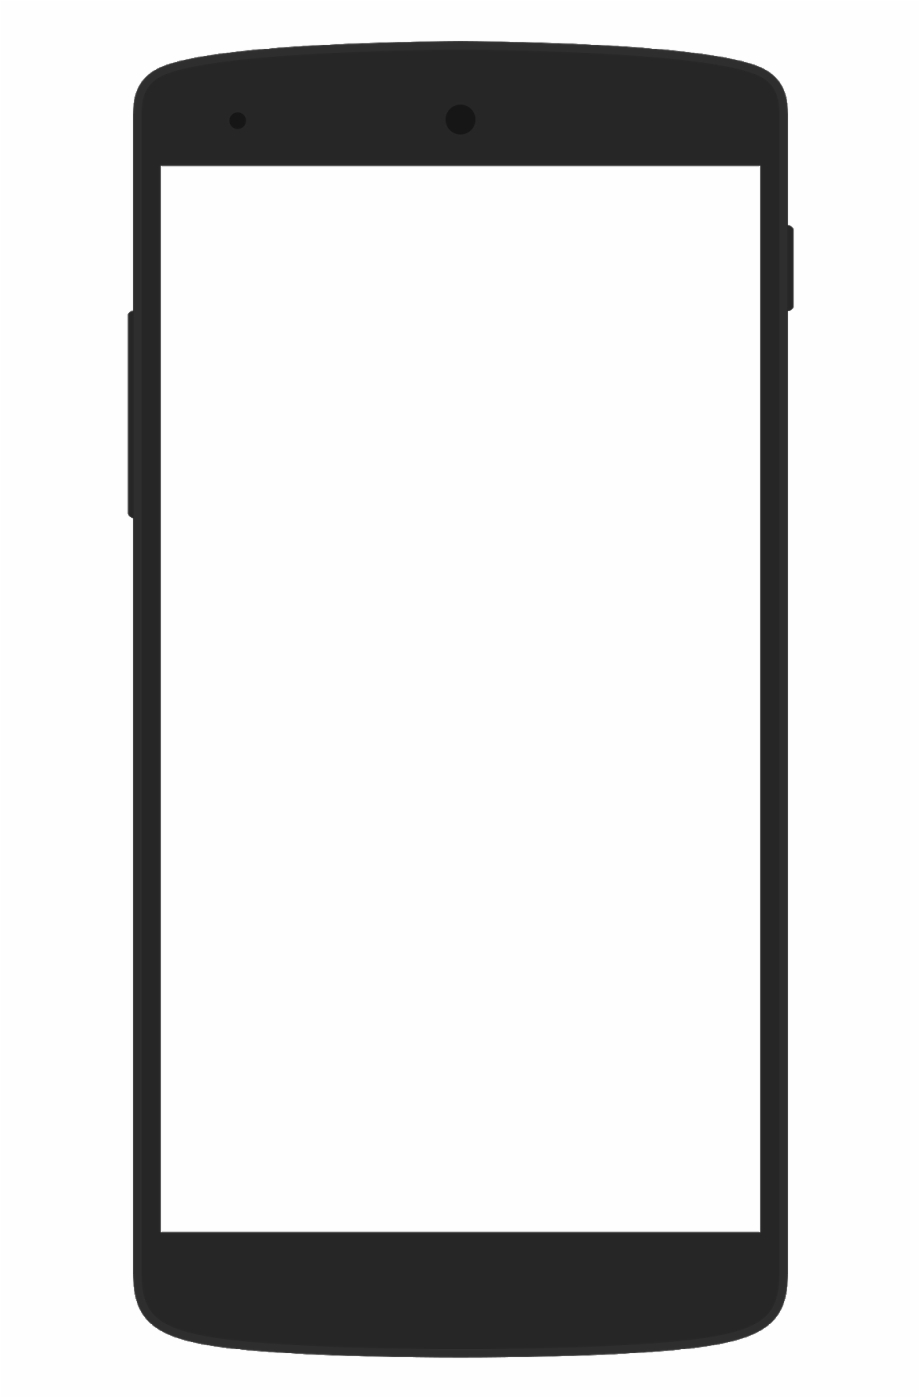 Mobile Frame Png Full Hd.